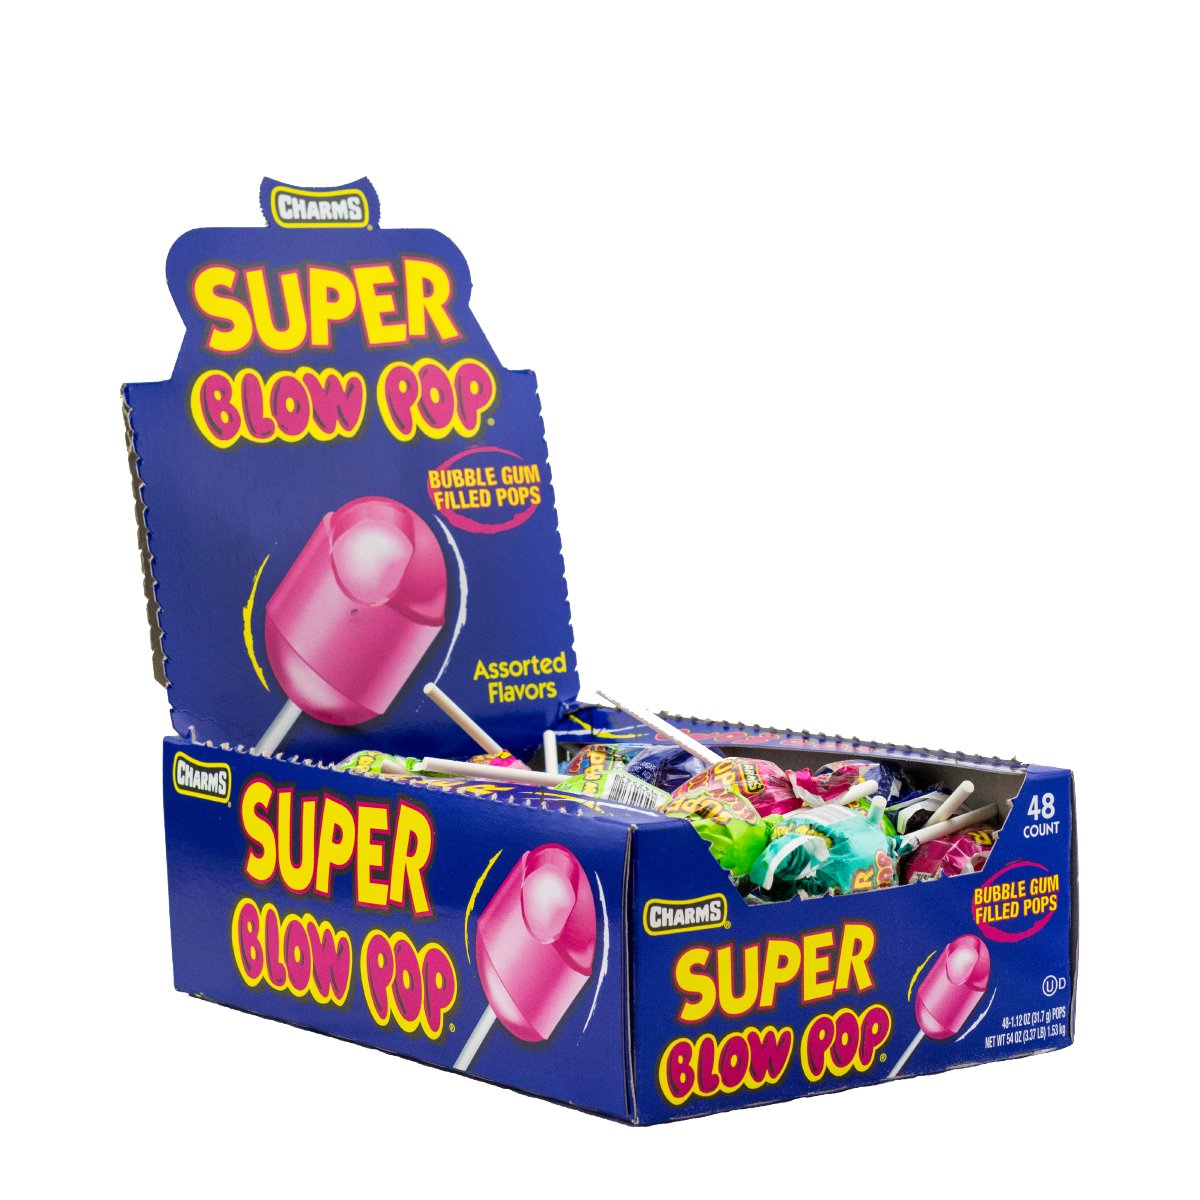 Charms Super Blow Pops 48 Lollipops/Box,Assorted Flavors by Tootsie Roll